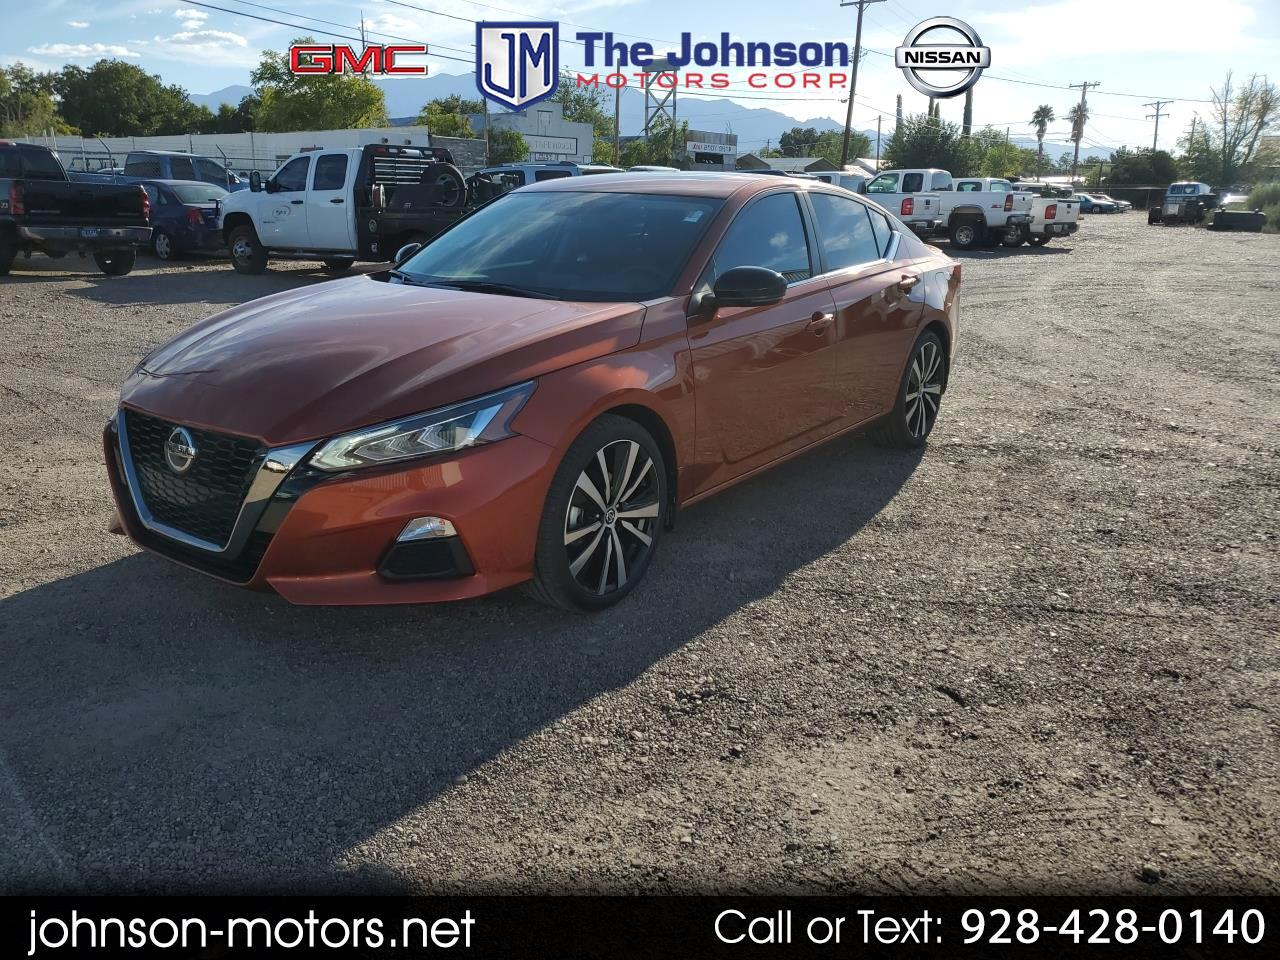 Nissan Altima 2.5 SR Sedan 2020